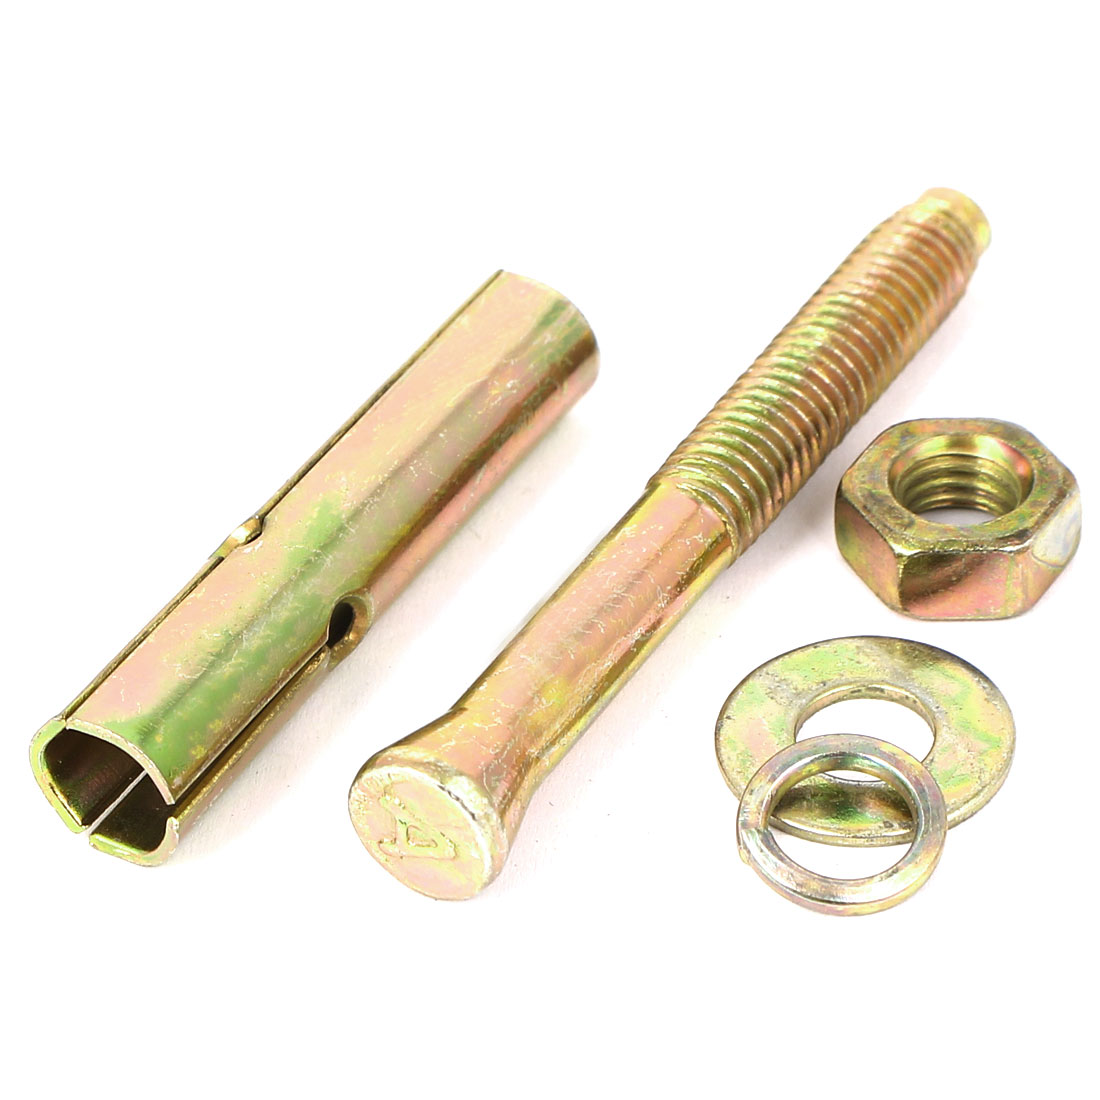 M8x70mm Yellow Zinc Plated Iron Hex Nut Anchor Expansion Sleeve Bolt Screw 6pcs - image 2 of 3